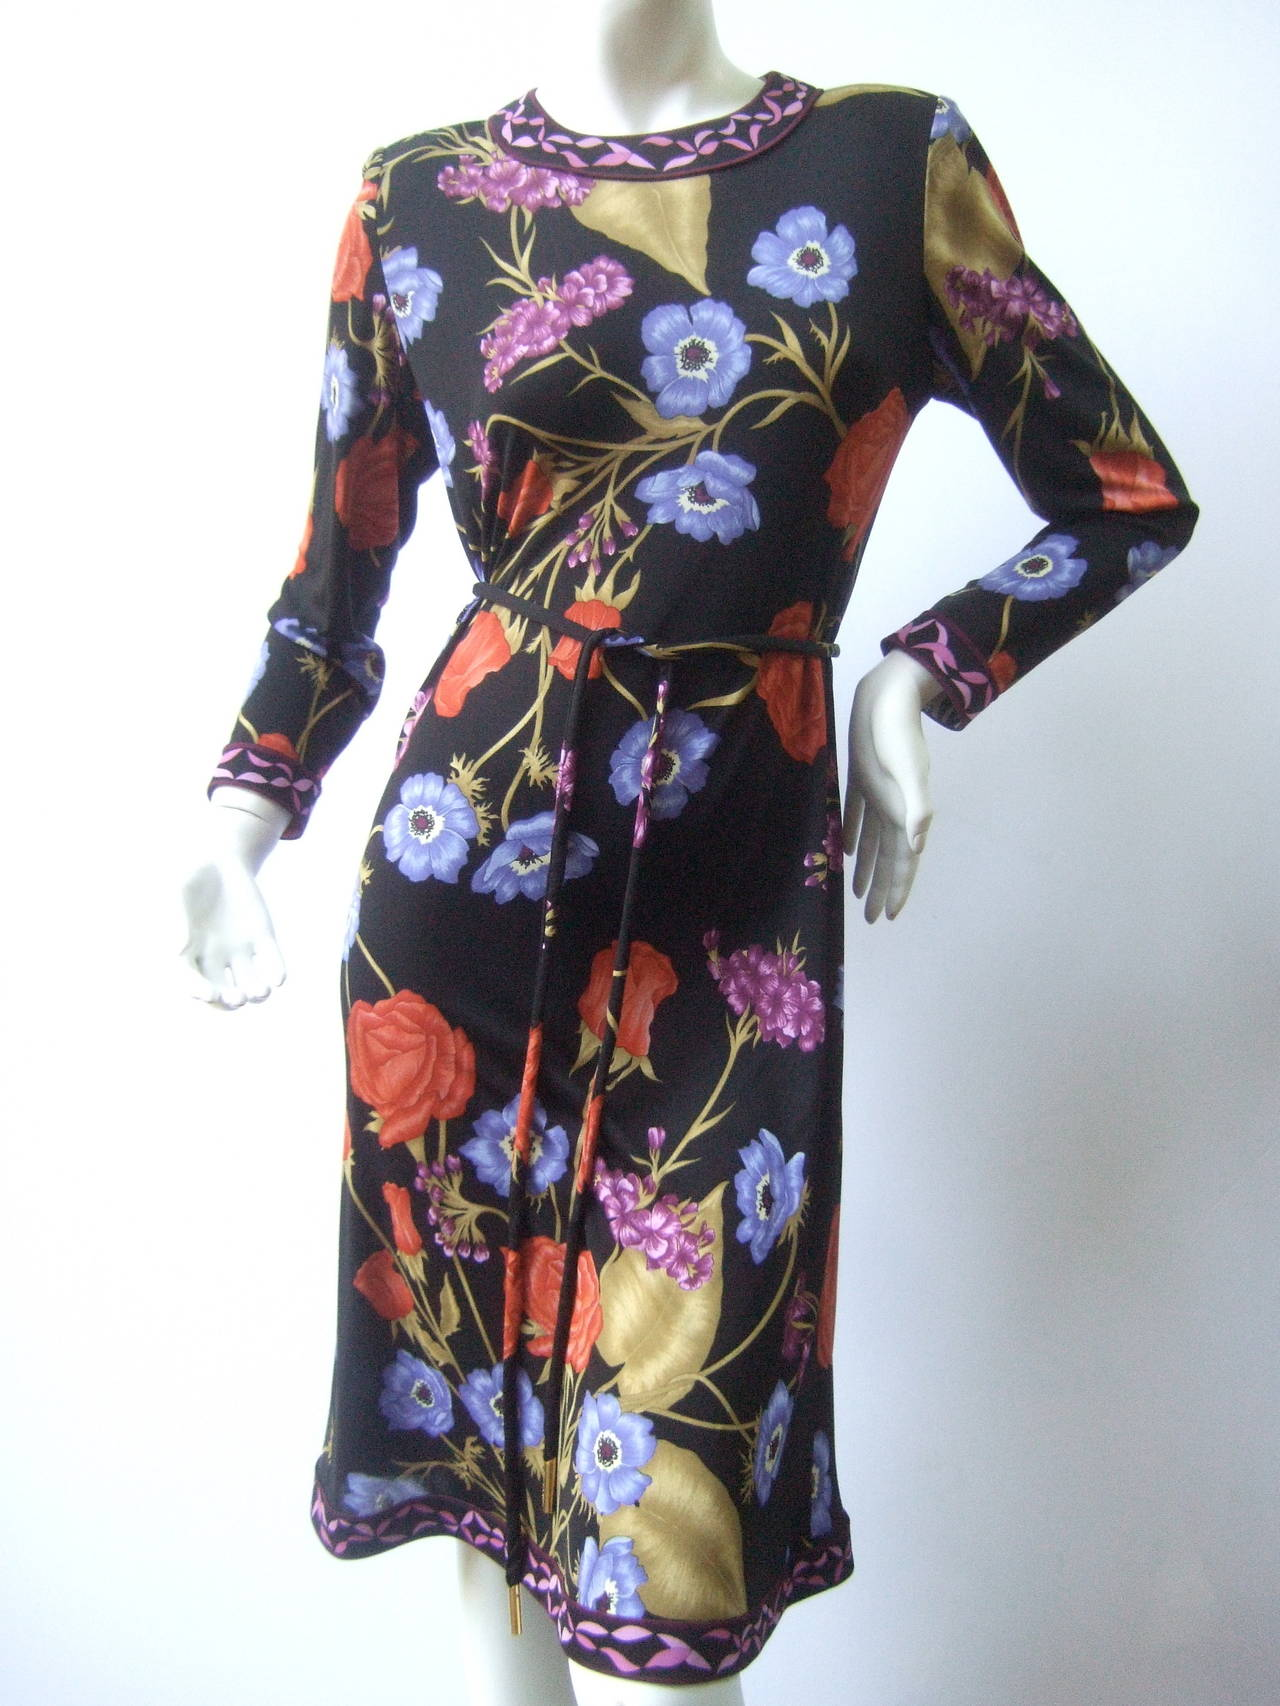 Averardo Bessi Silk Jersey Floral Print Dress Made In